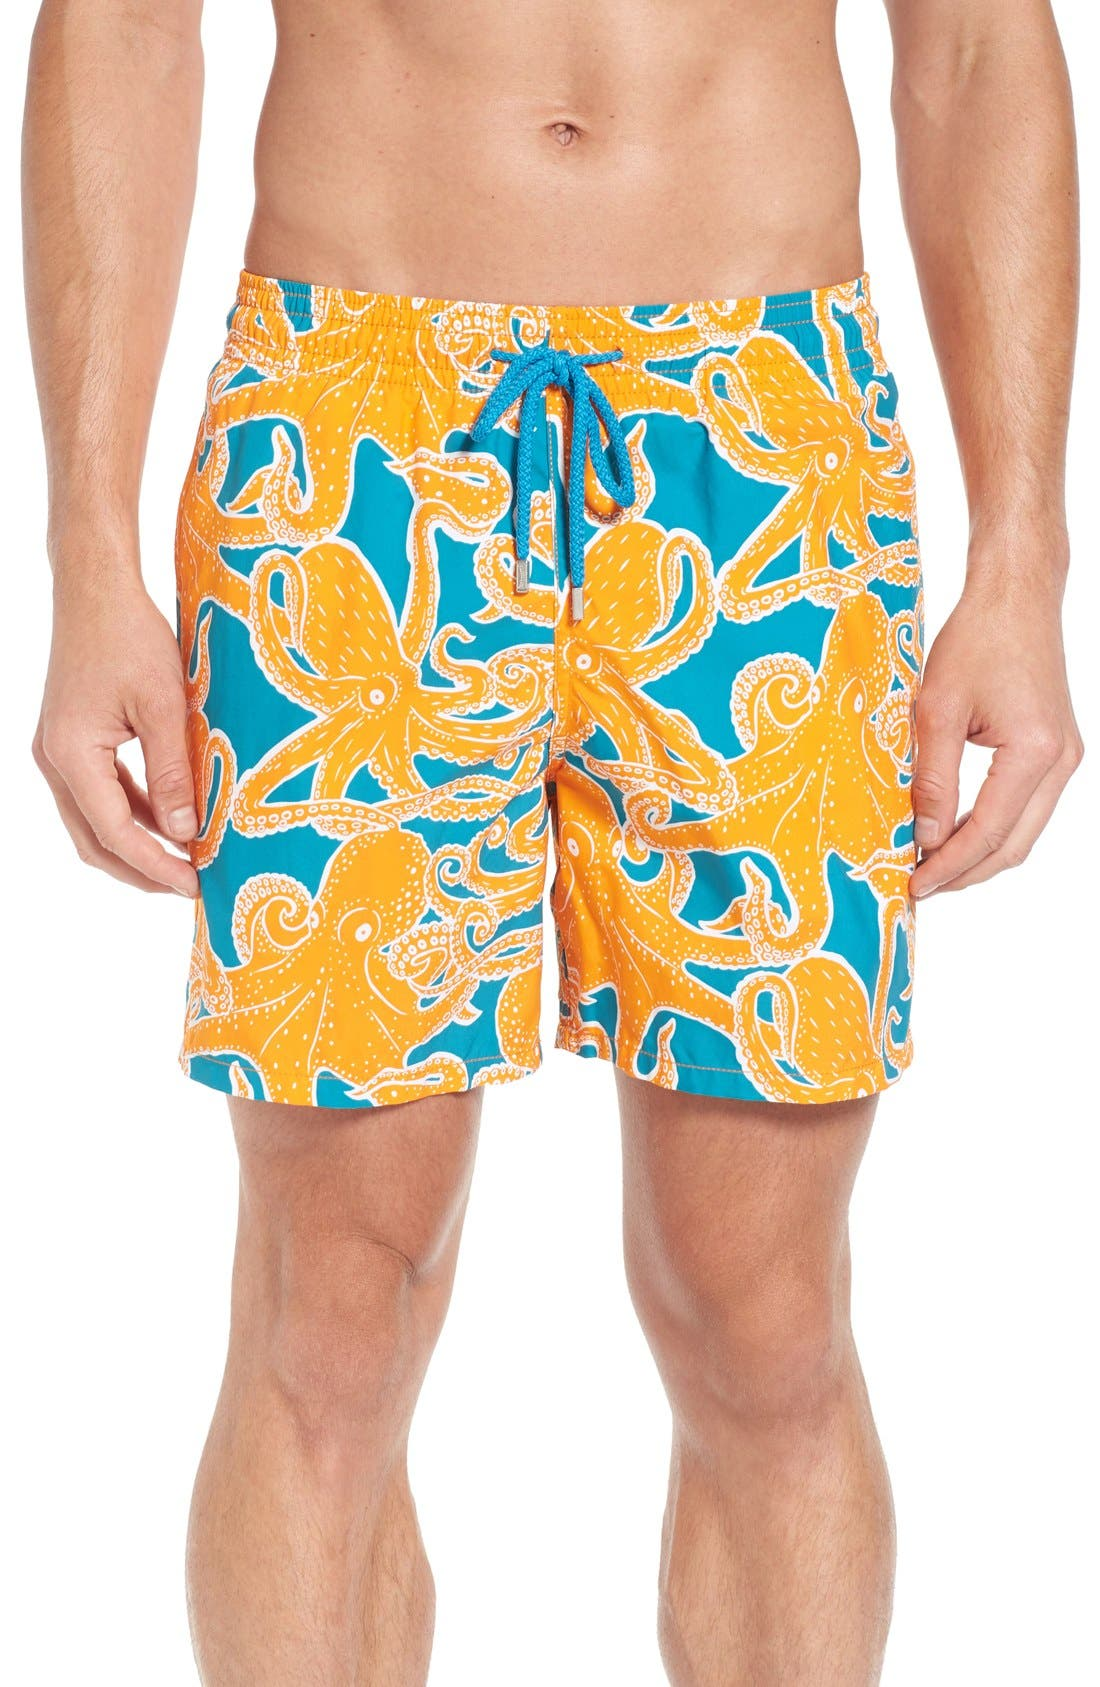 Octopus Print Swim Trunks,                             Main thumbnail 1, color,                             Kumquat